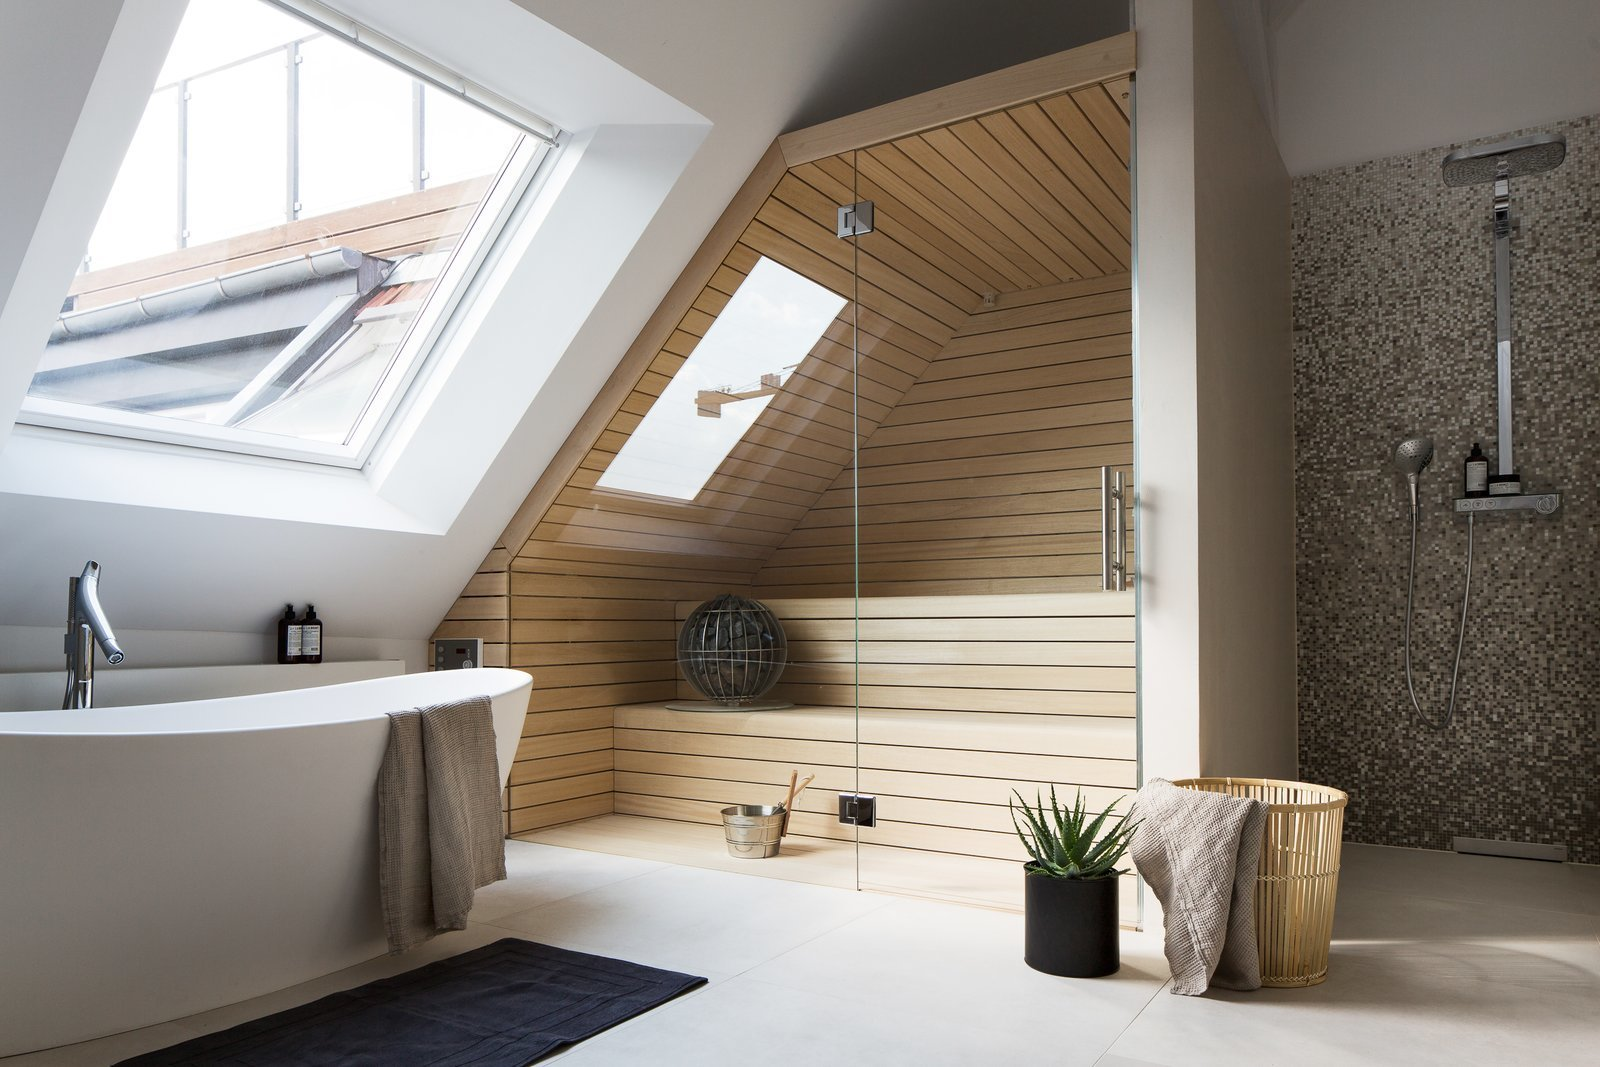 Concrete Floor, Soaking Tub, Open Shower, Freestanding Tub, Windows, and Skylight Window Type This converted attic in a turn-of-the-century building in Berlin's Charlottenburg neighborhood has a large skylight close the bathtub, on the side-slope of the roof, which allows one to look up at the sky while having a relaxing soak.  Photo 7 of 10 in 10 Light-Filled Homes With Interesting Skylights